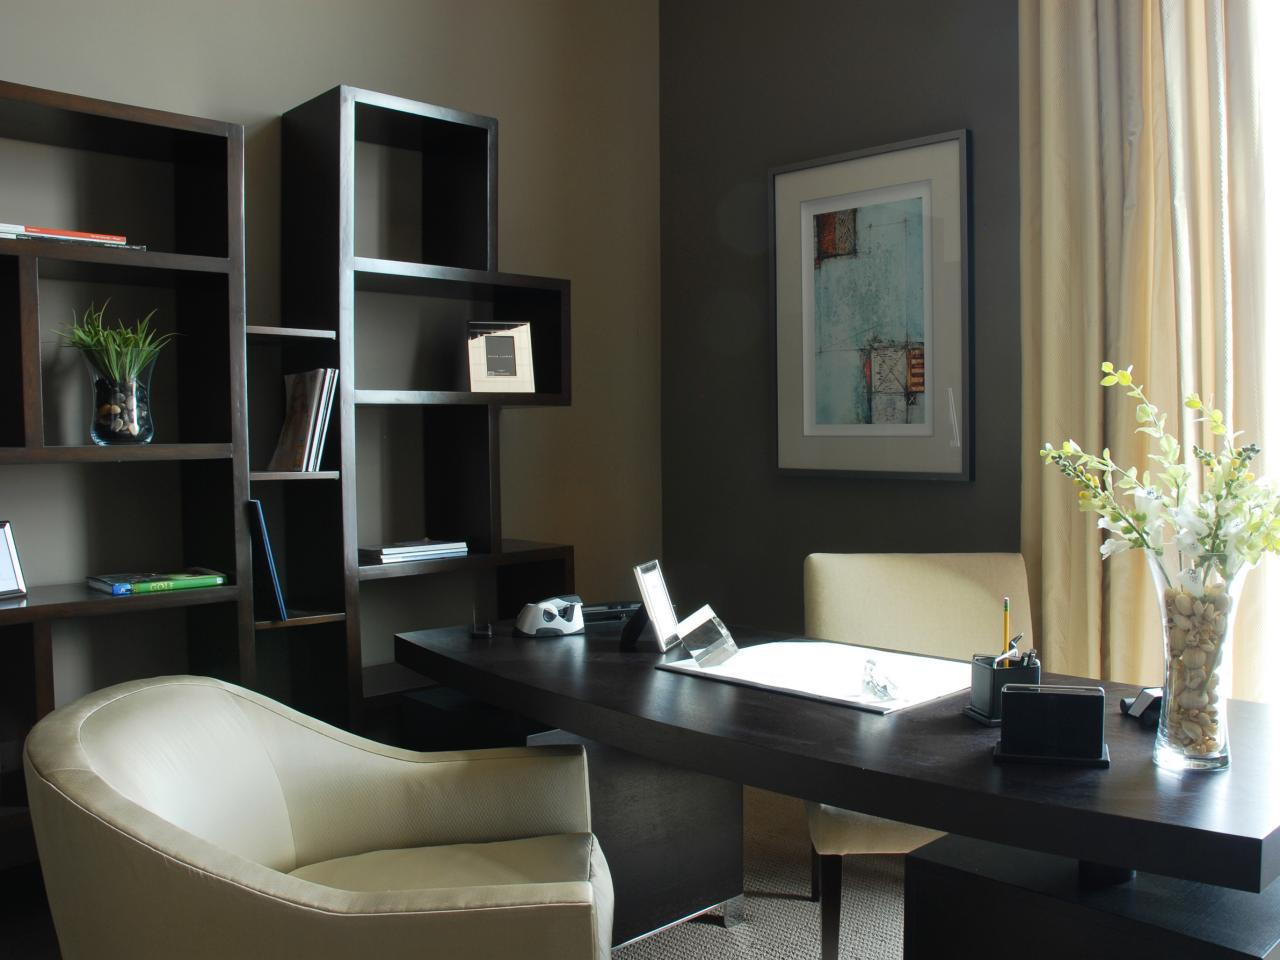 best of designers 39 portfolio home offices decorating and design ideas for interior rooms hgtv. Black Bedroom Furniture Sets. Home Design Ideas